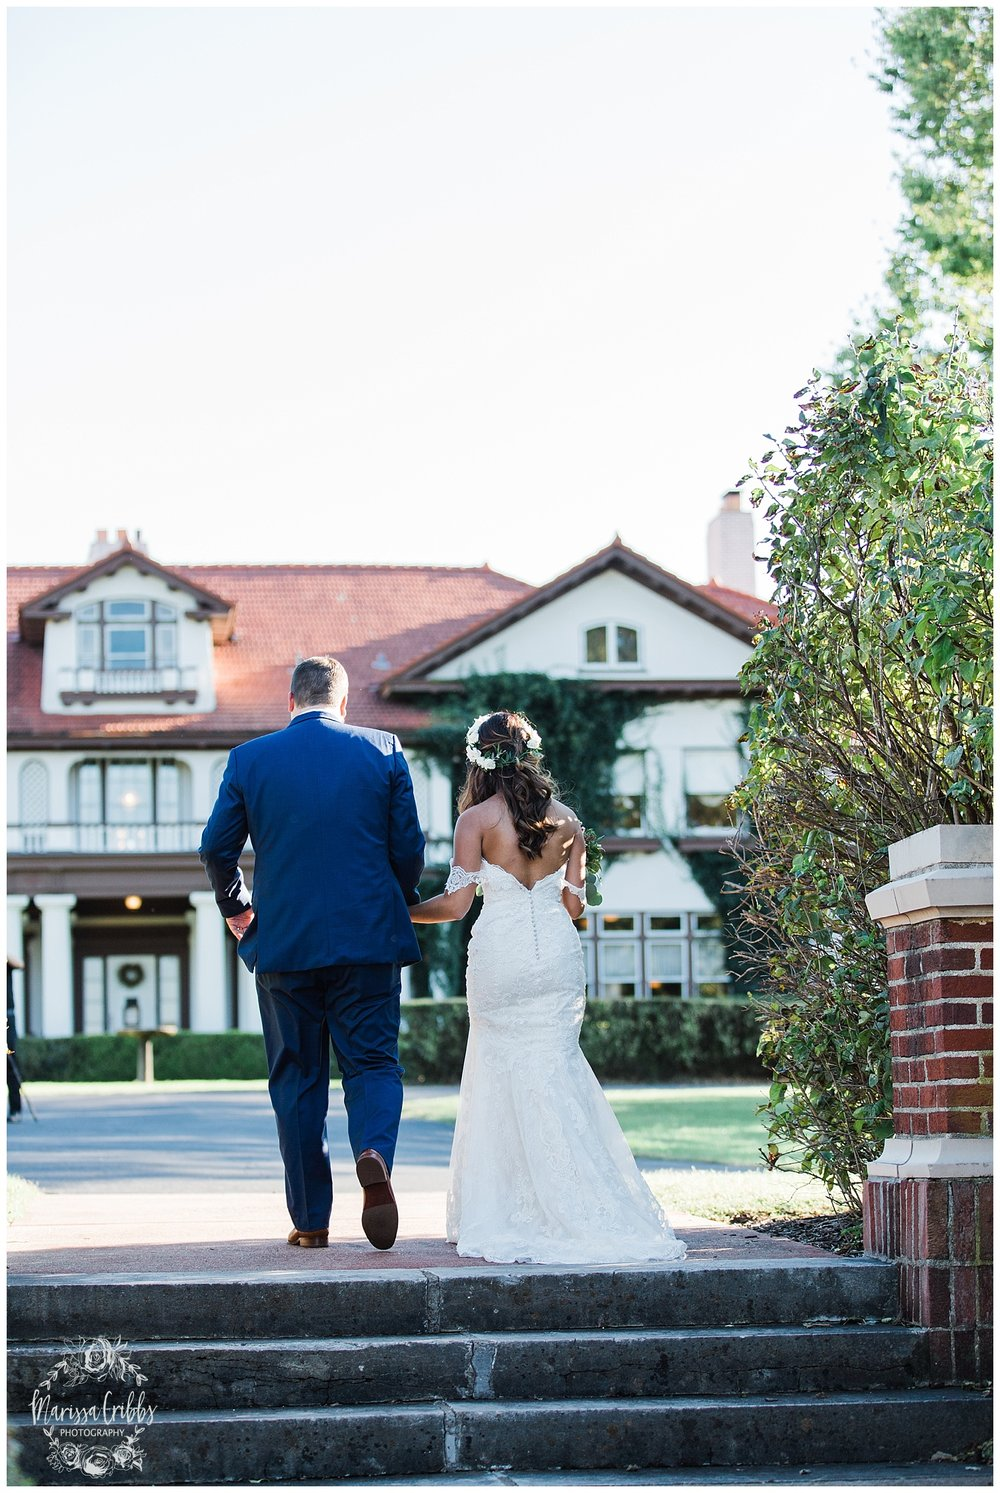 LONGVIEW MANSION WEDDING | MARISSA CRIBBS PHOTOGRAPHY_3268.jpg